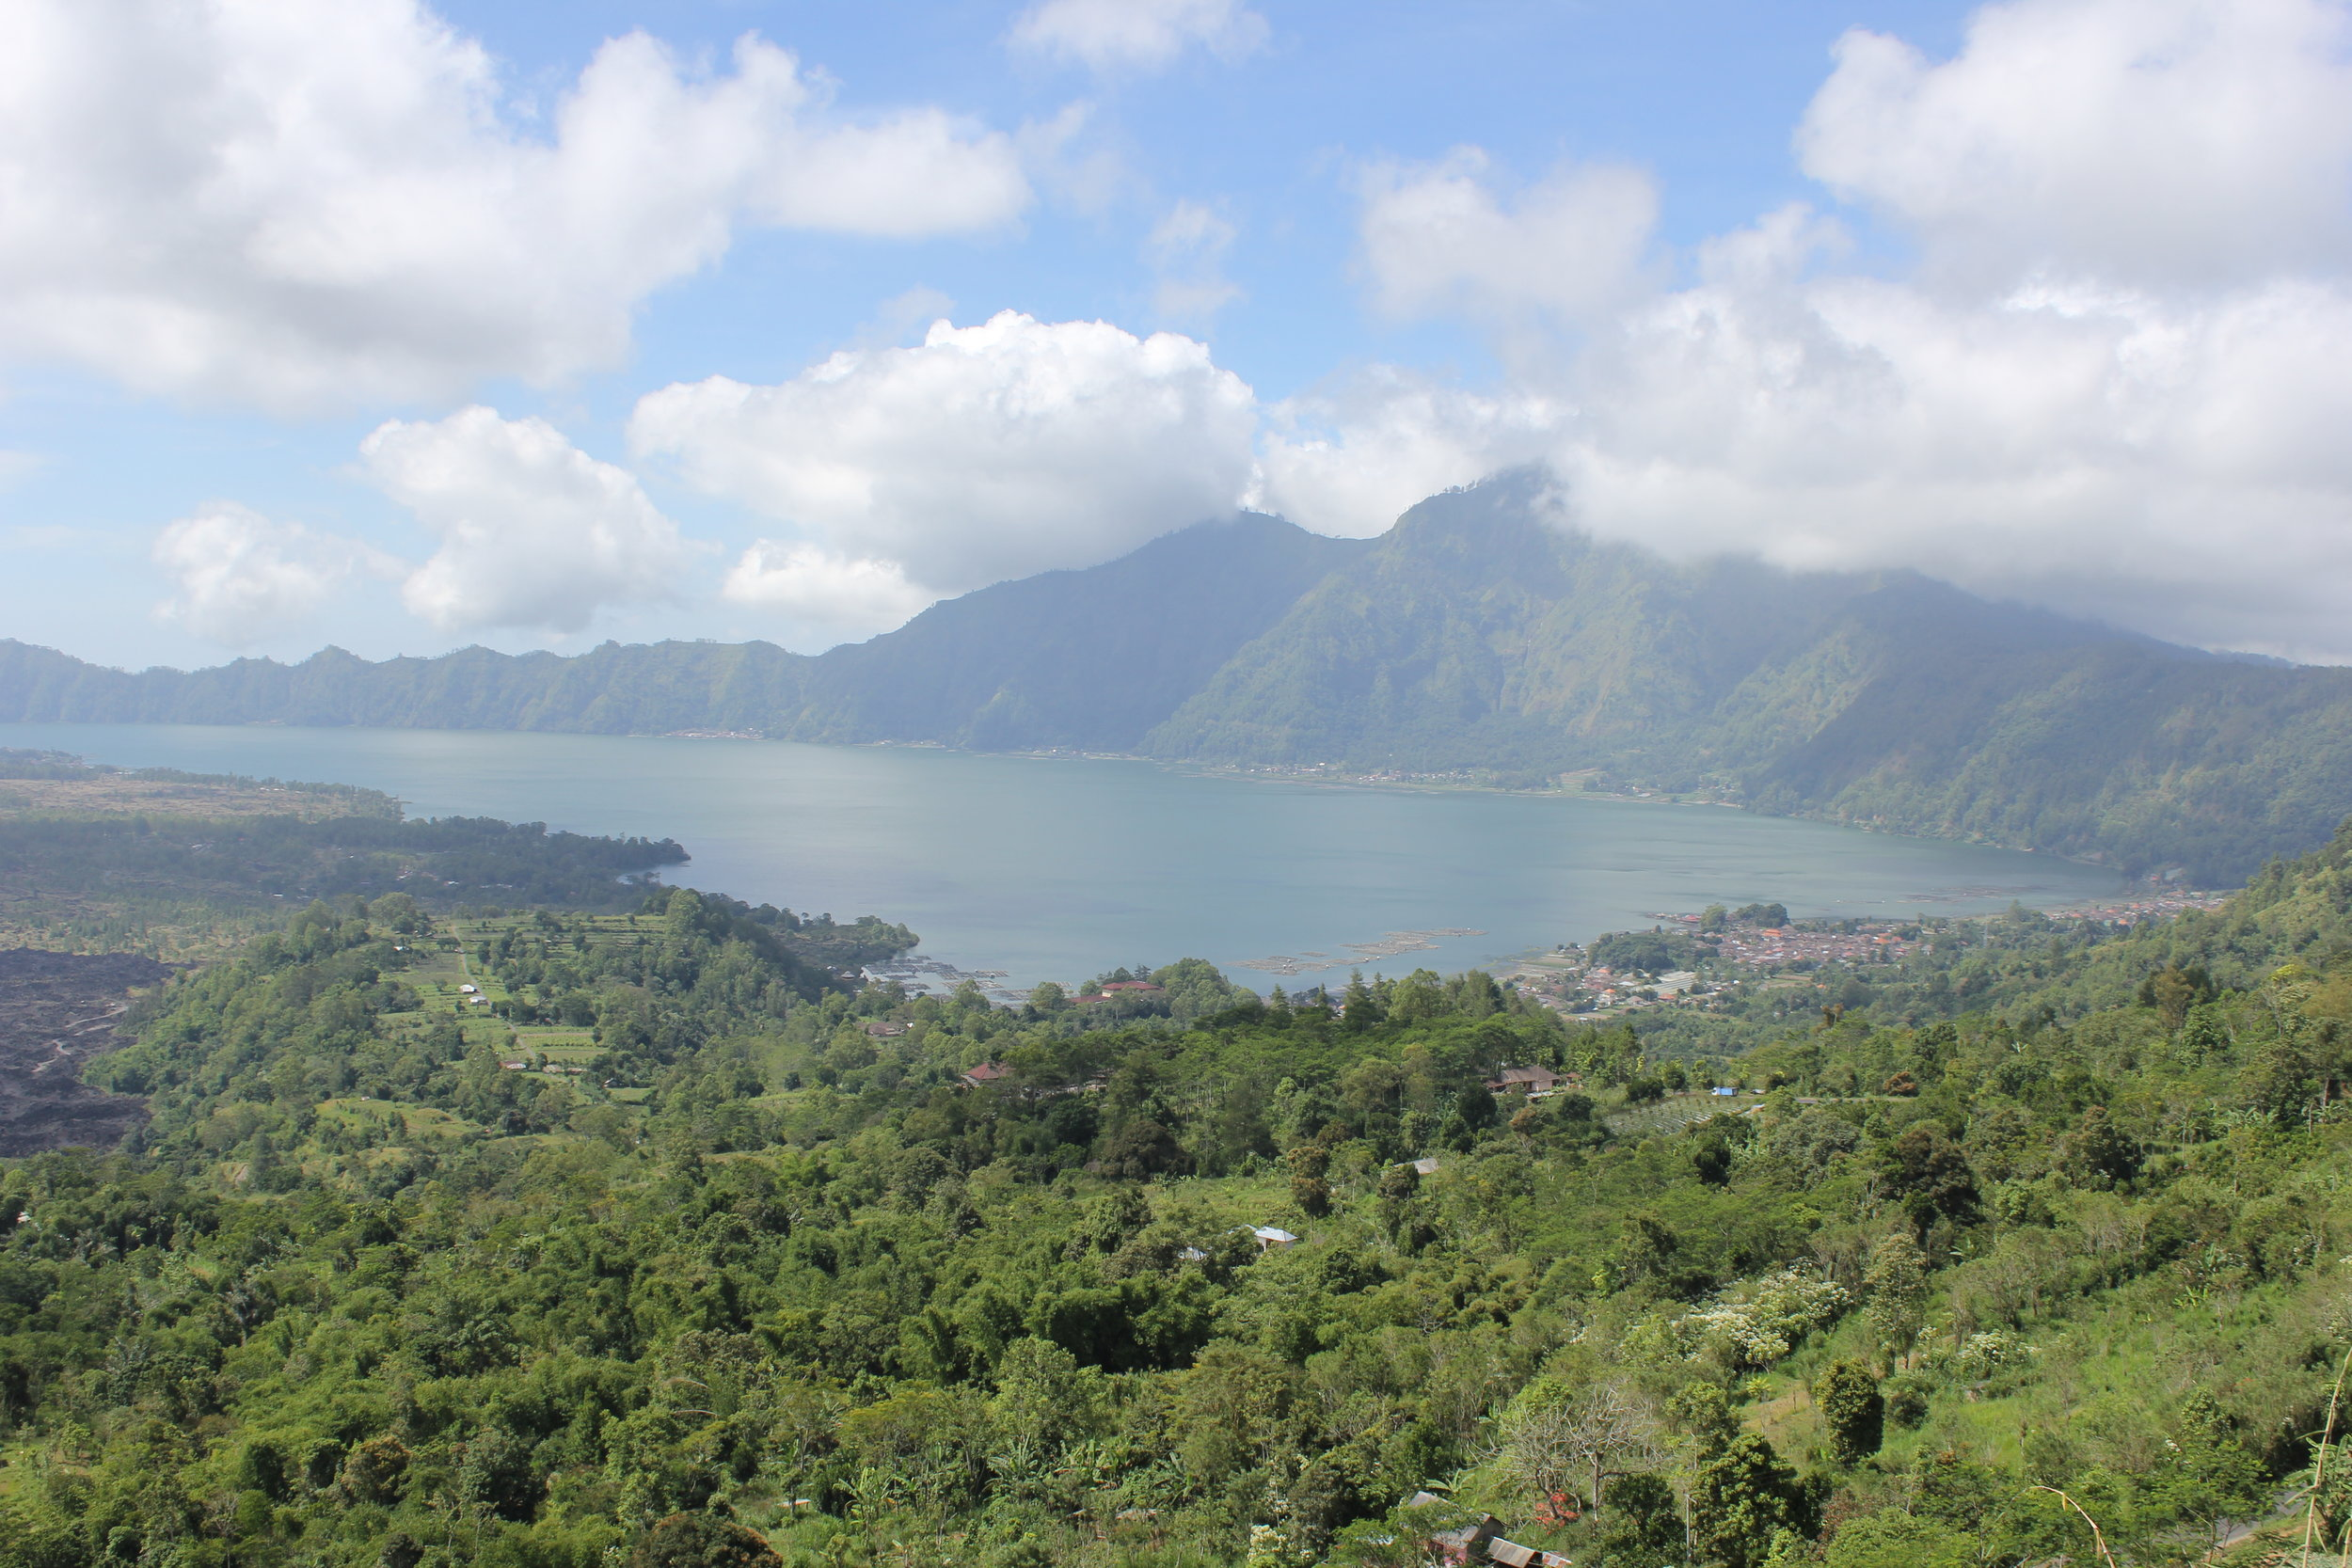 Looking out toward Kintamani Volcano and Batur Lake in the middle of Bali